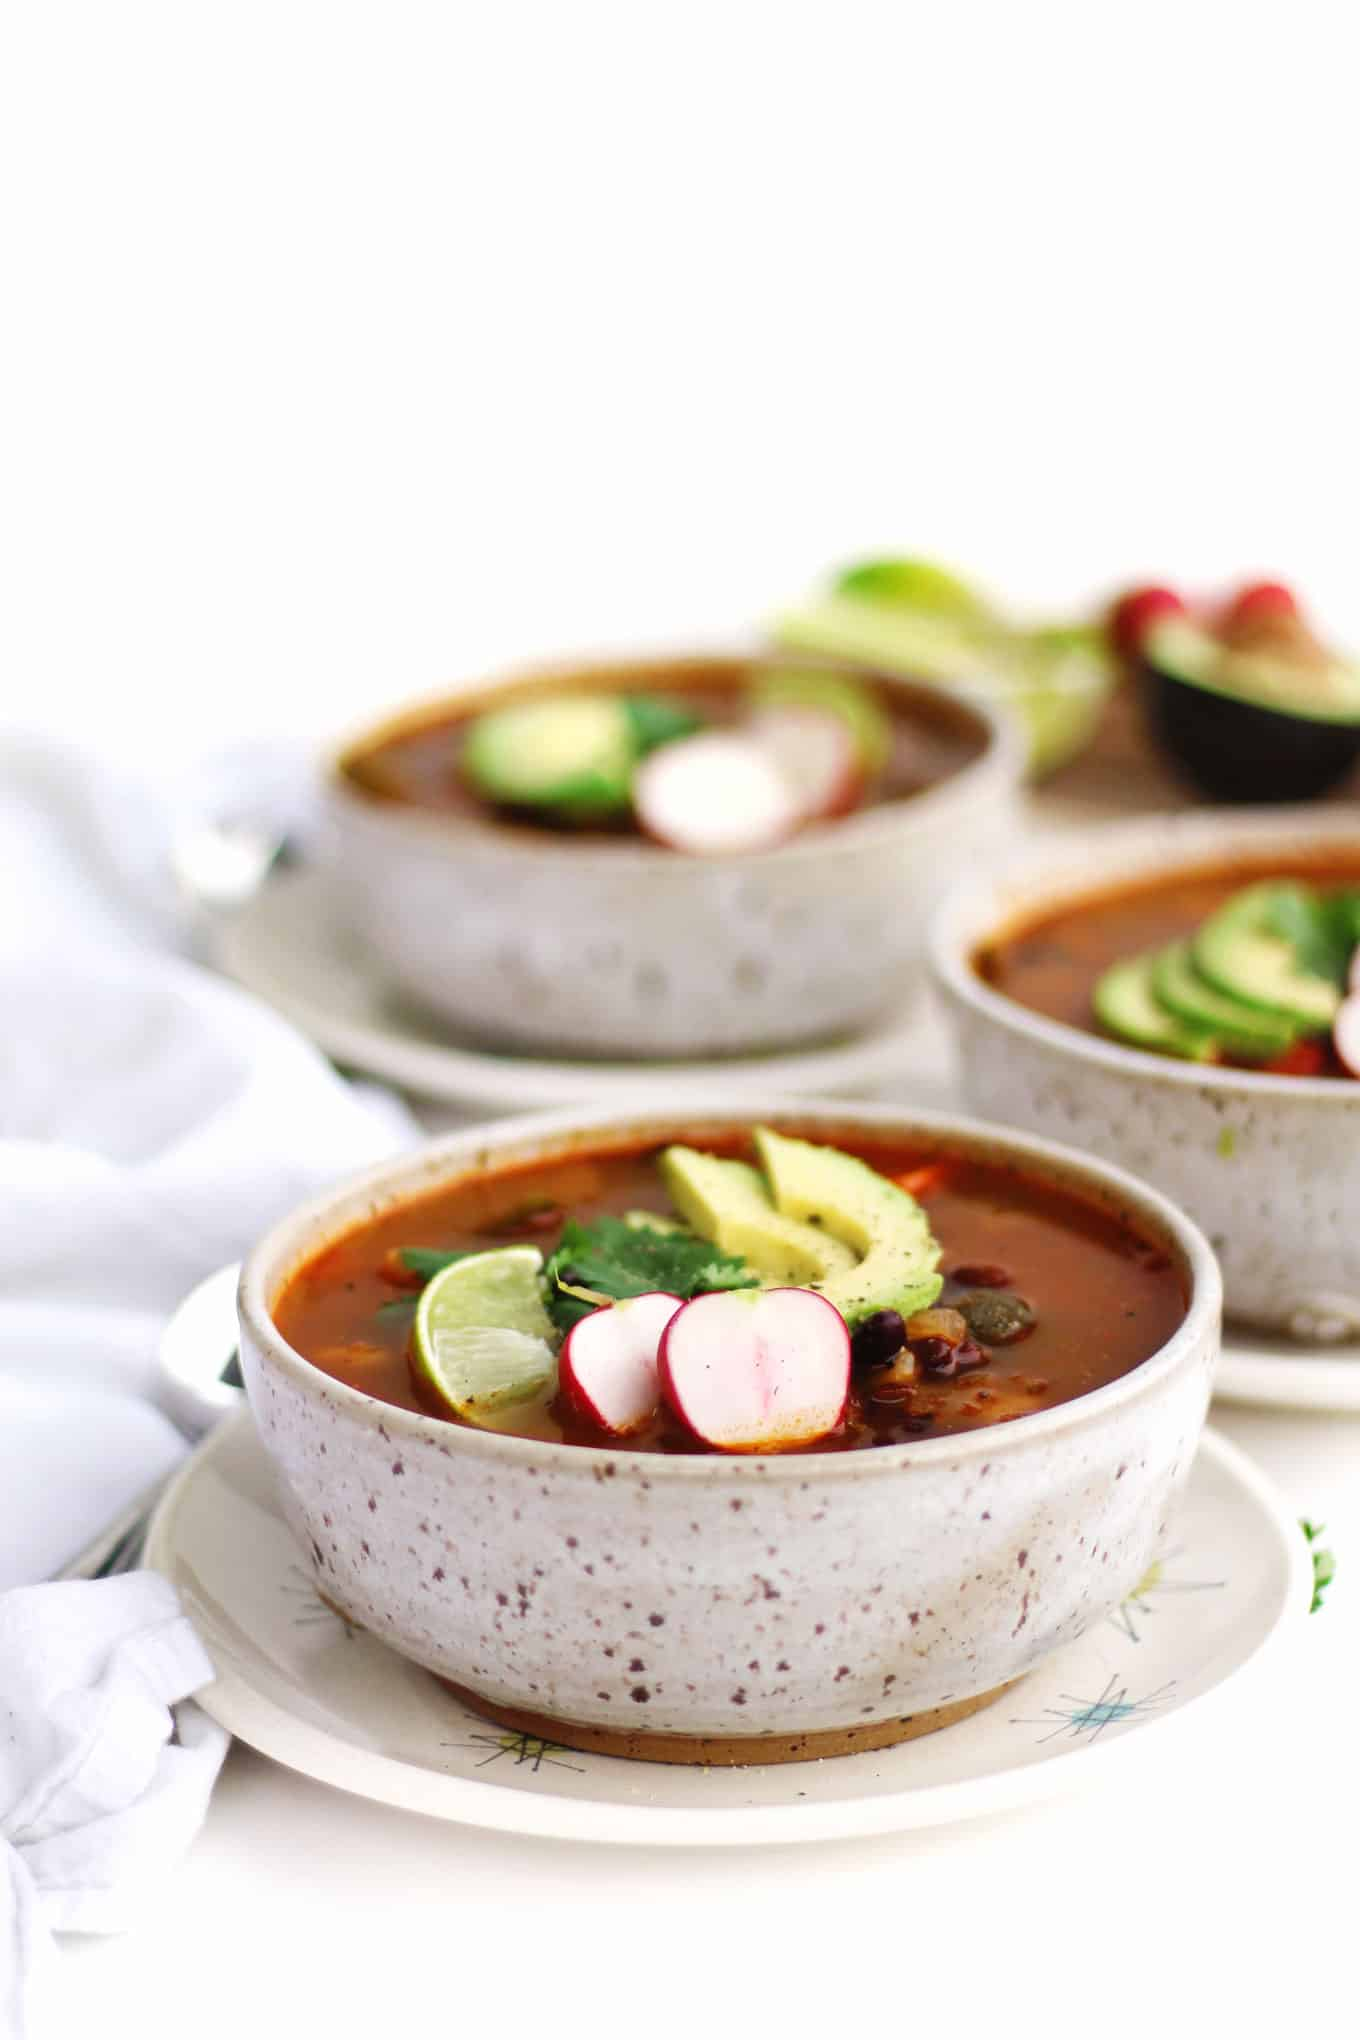 bowl of hominy soup with radishes and avocado